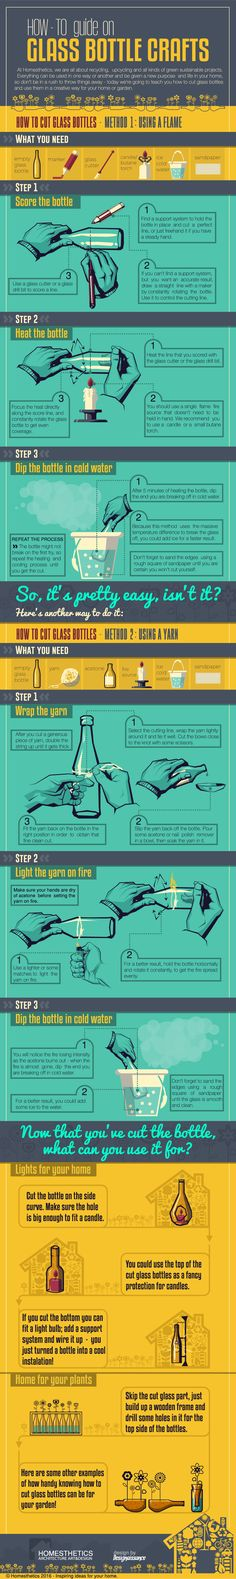 Smart Guide on How to Cut Bottles and Craft With Glass Recipients #infographic #Decor #Crafts #Bottle